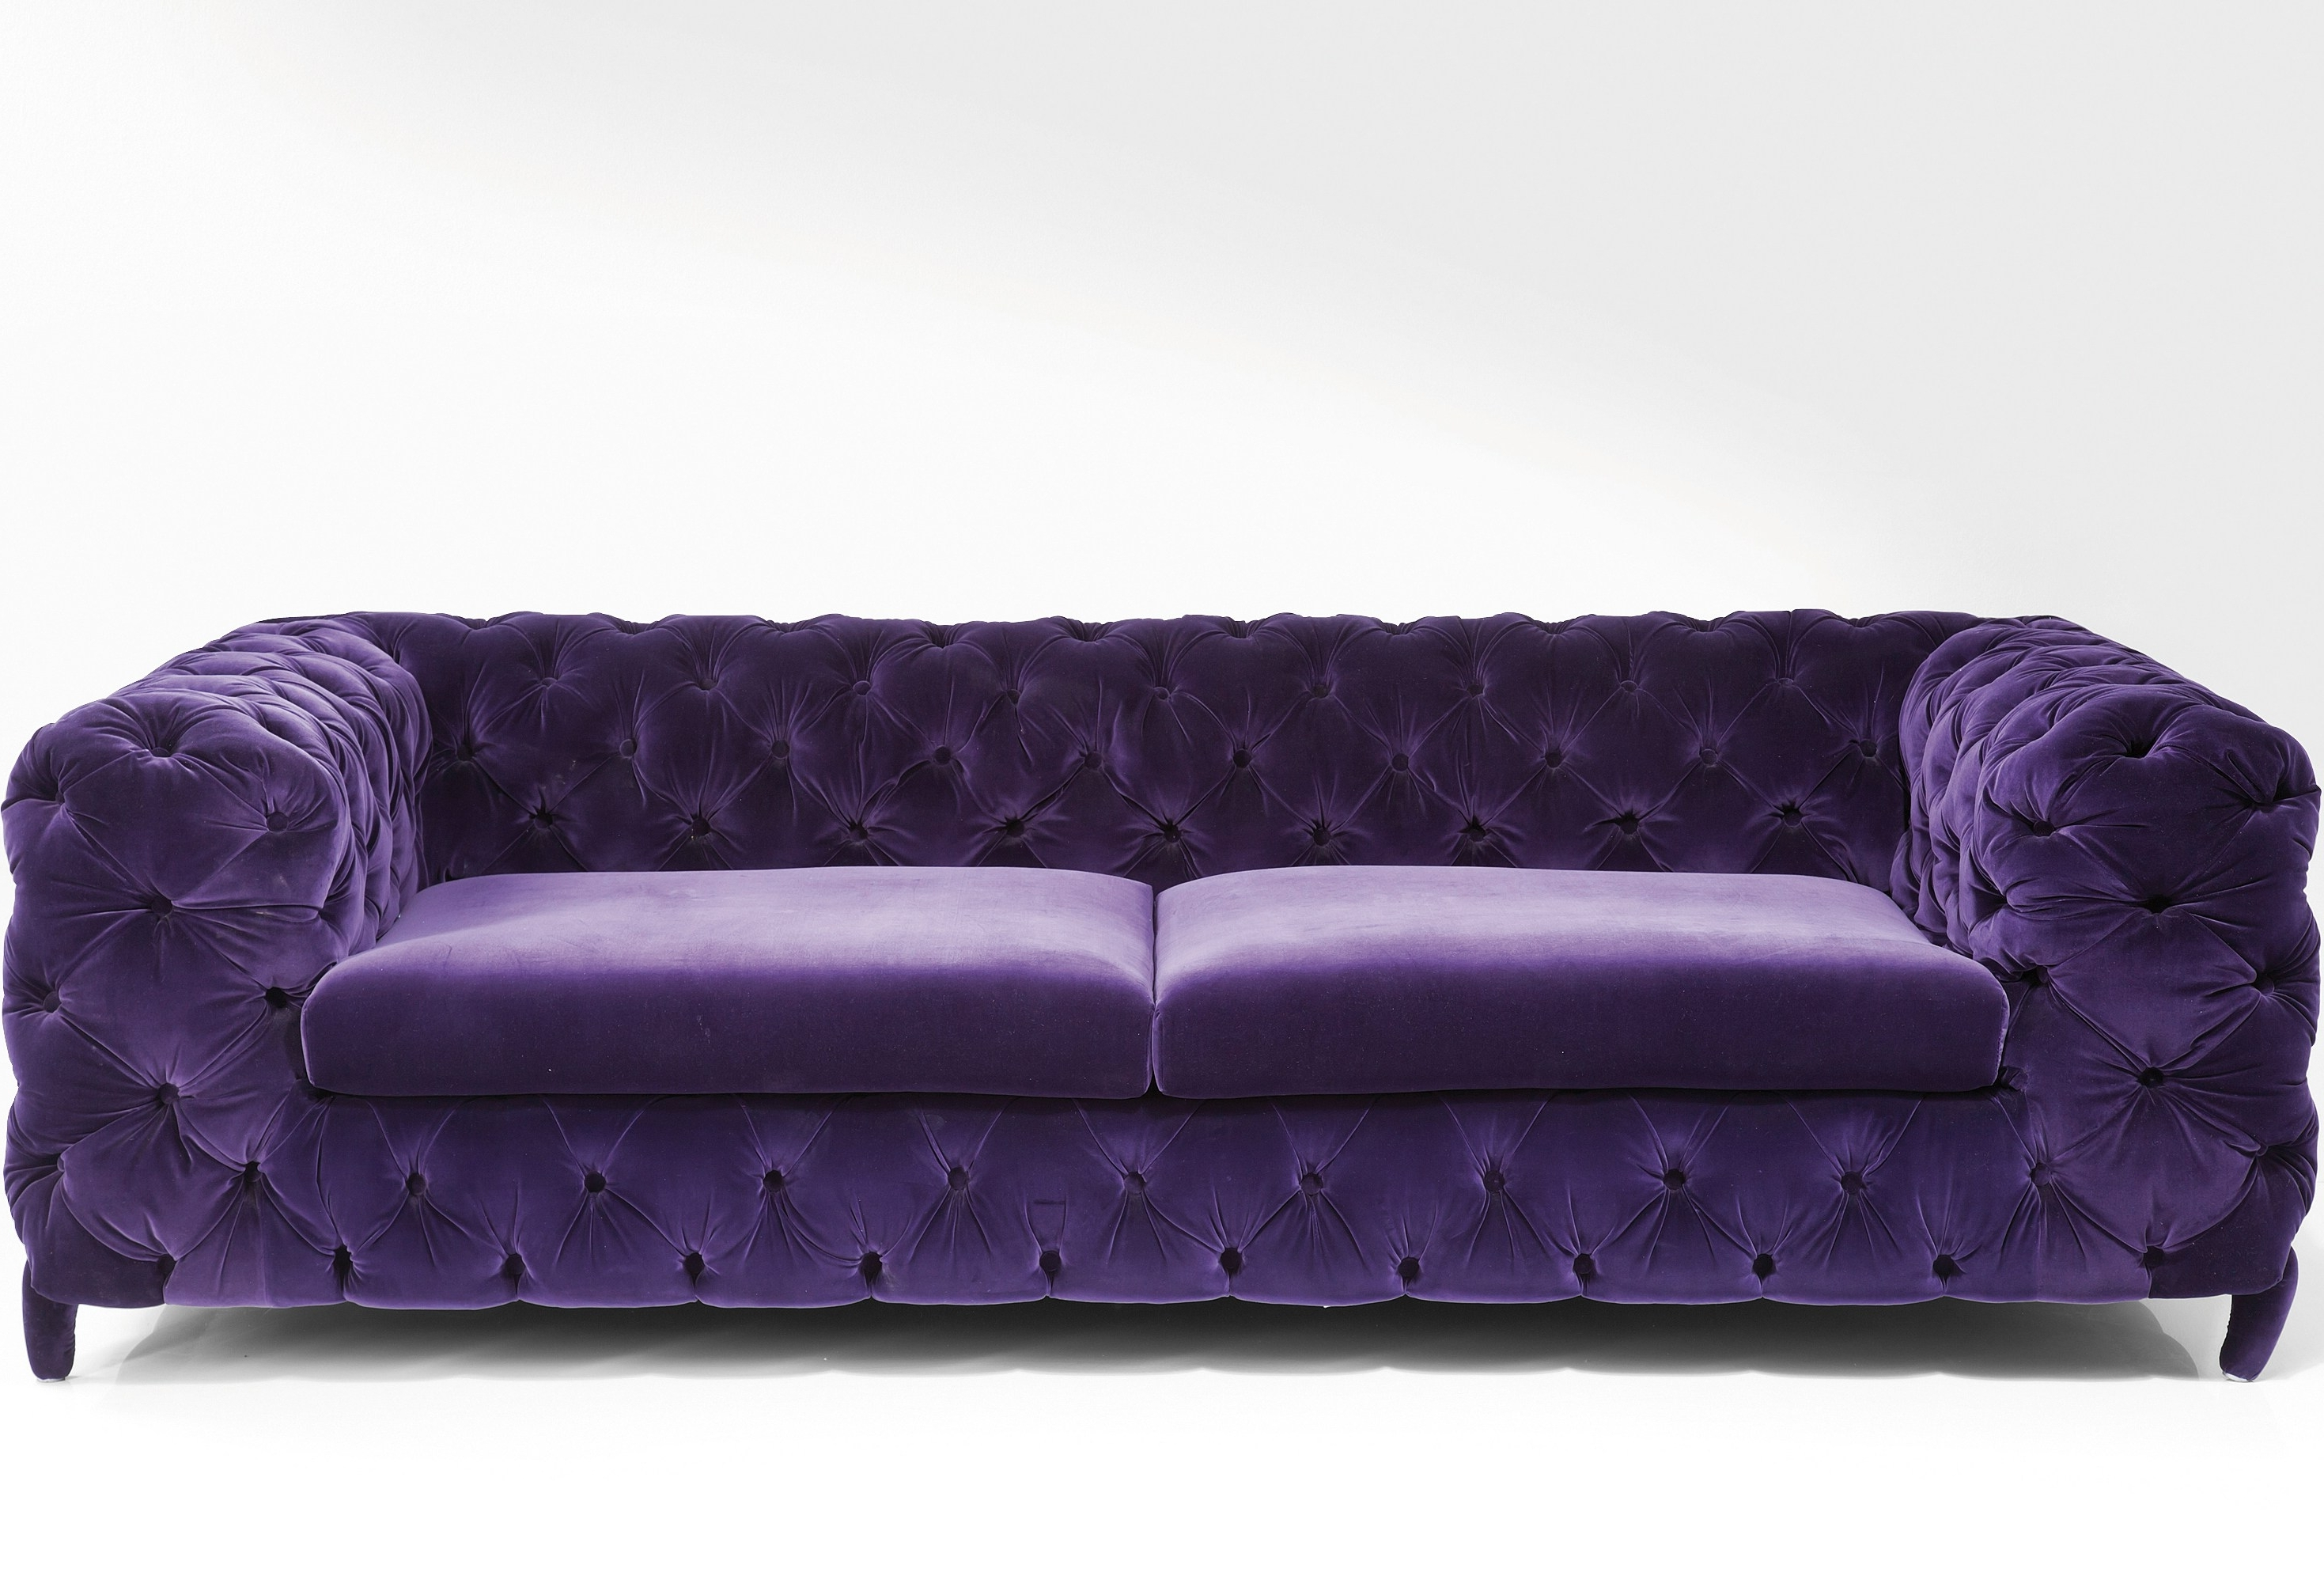 Living Room : Match A Purple Sofa Living Room Decor Purple Leather For Fashionable Velvet Purple Sofas (View 6 of 20)